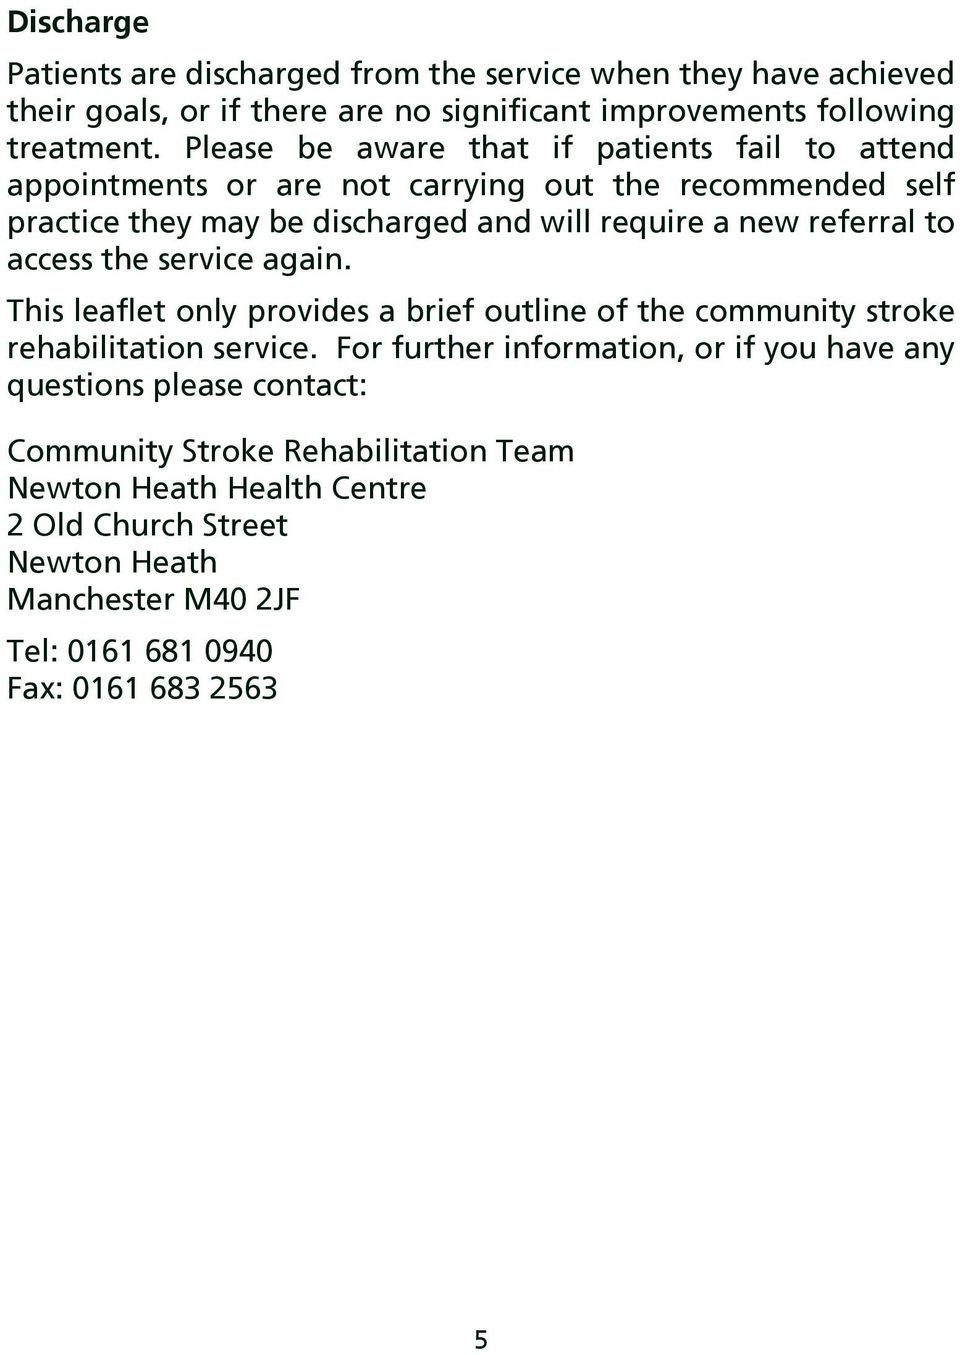 referral to access the service again. This leaflet only provides a brief outline of the community stroke rehabilitation service.